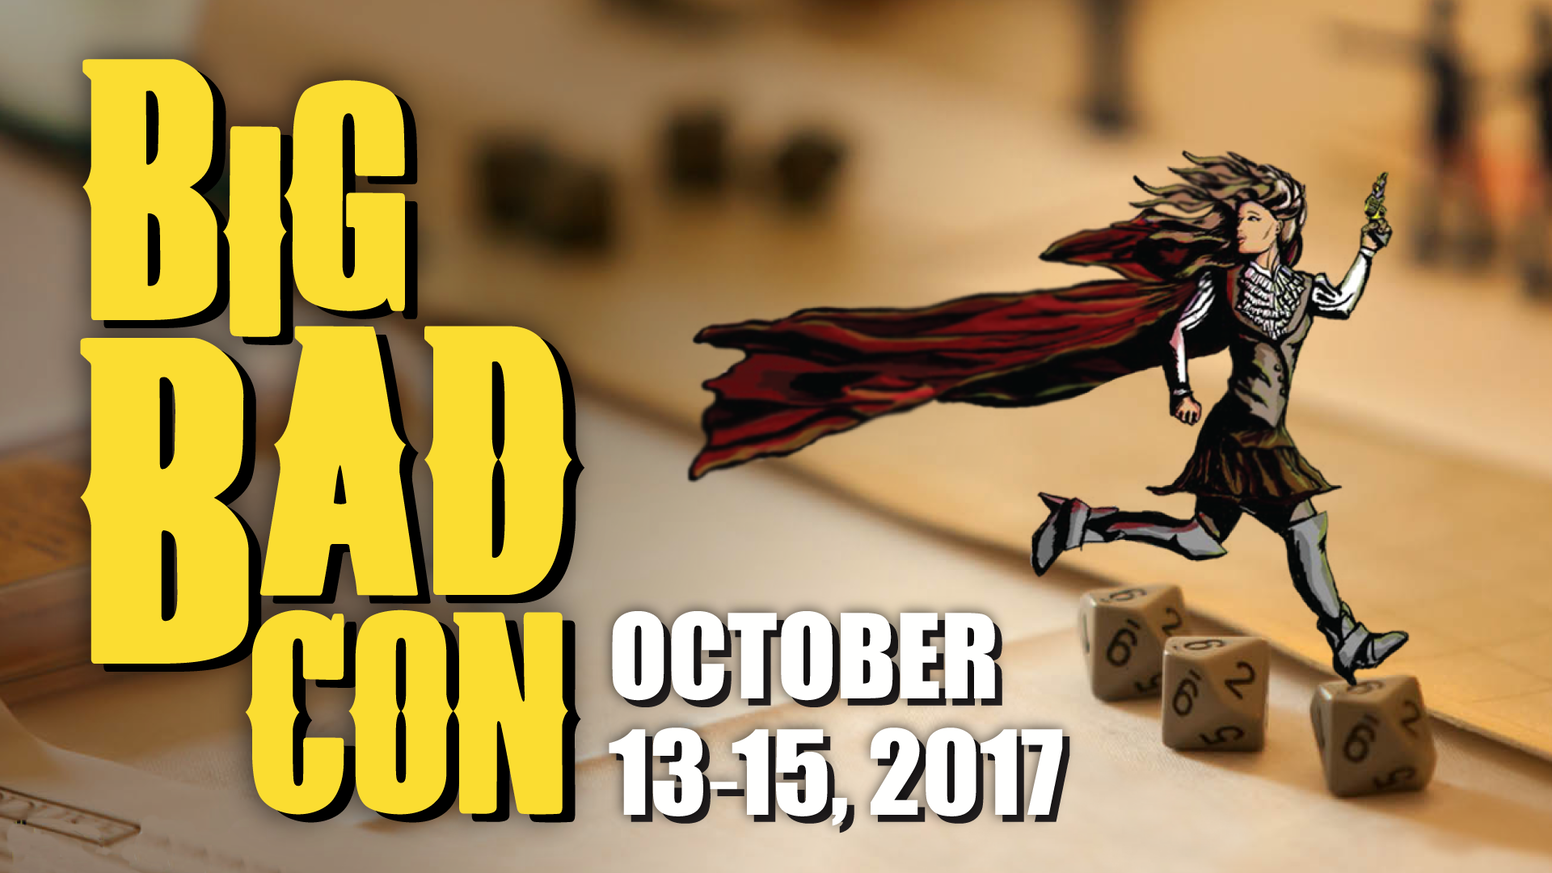 Big Bad Con is built on great games, great game masters, and a welcoming community. Come join us October 13-15, 2017!